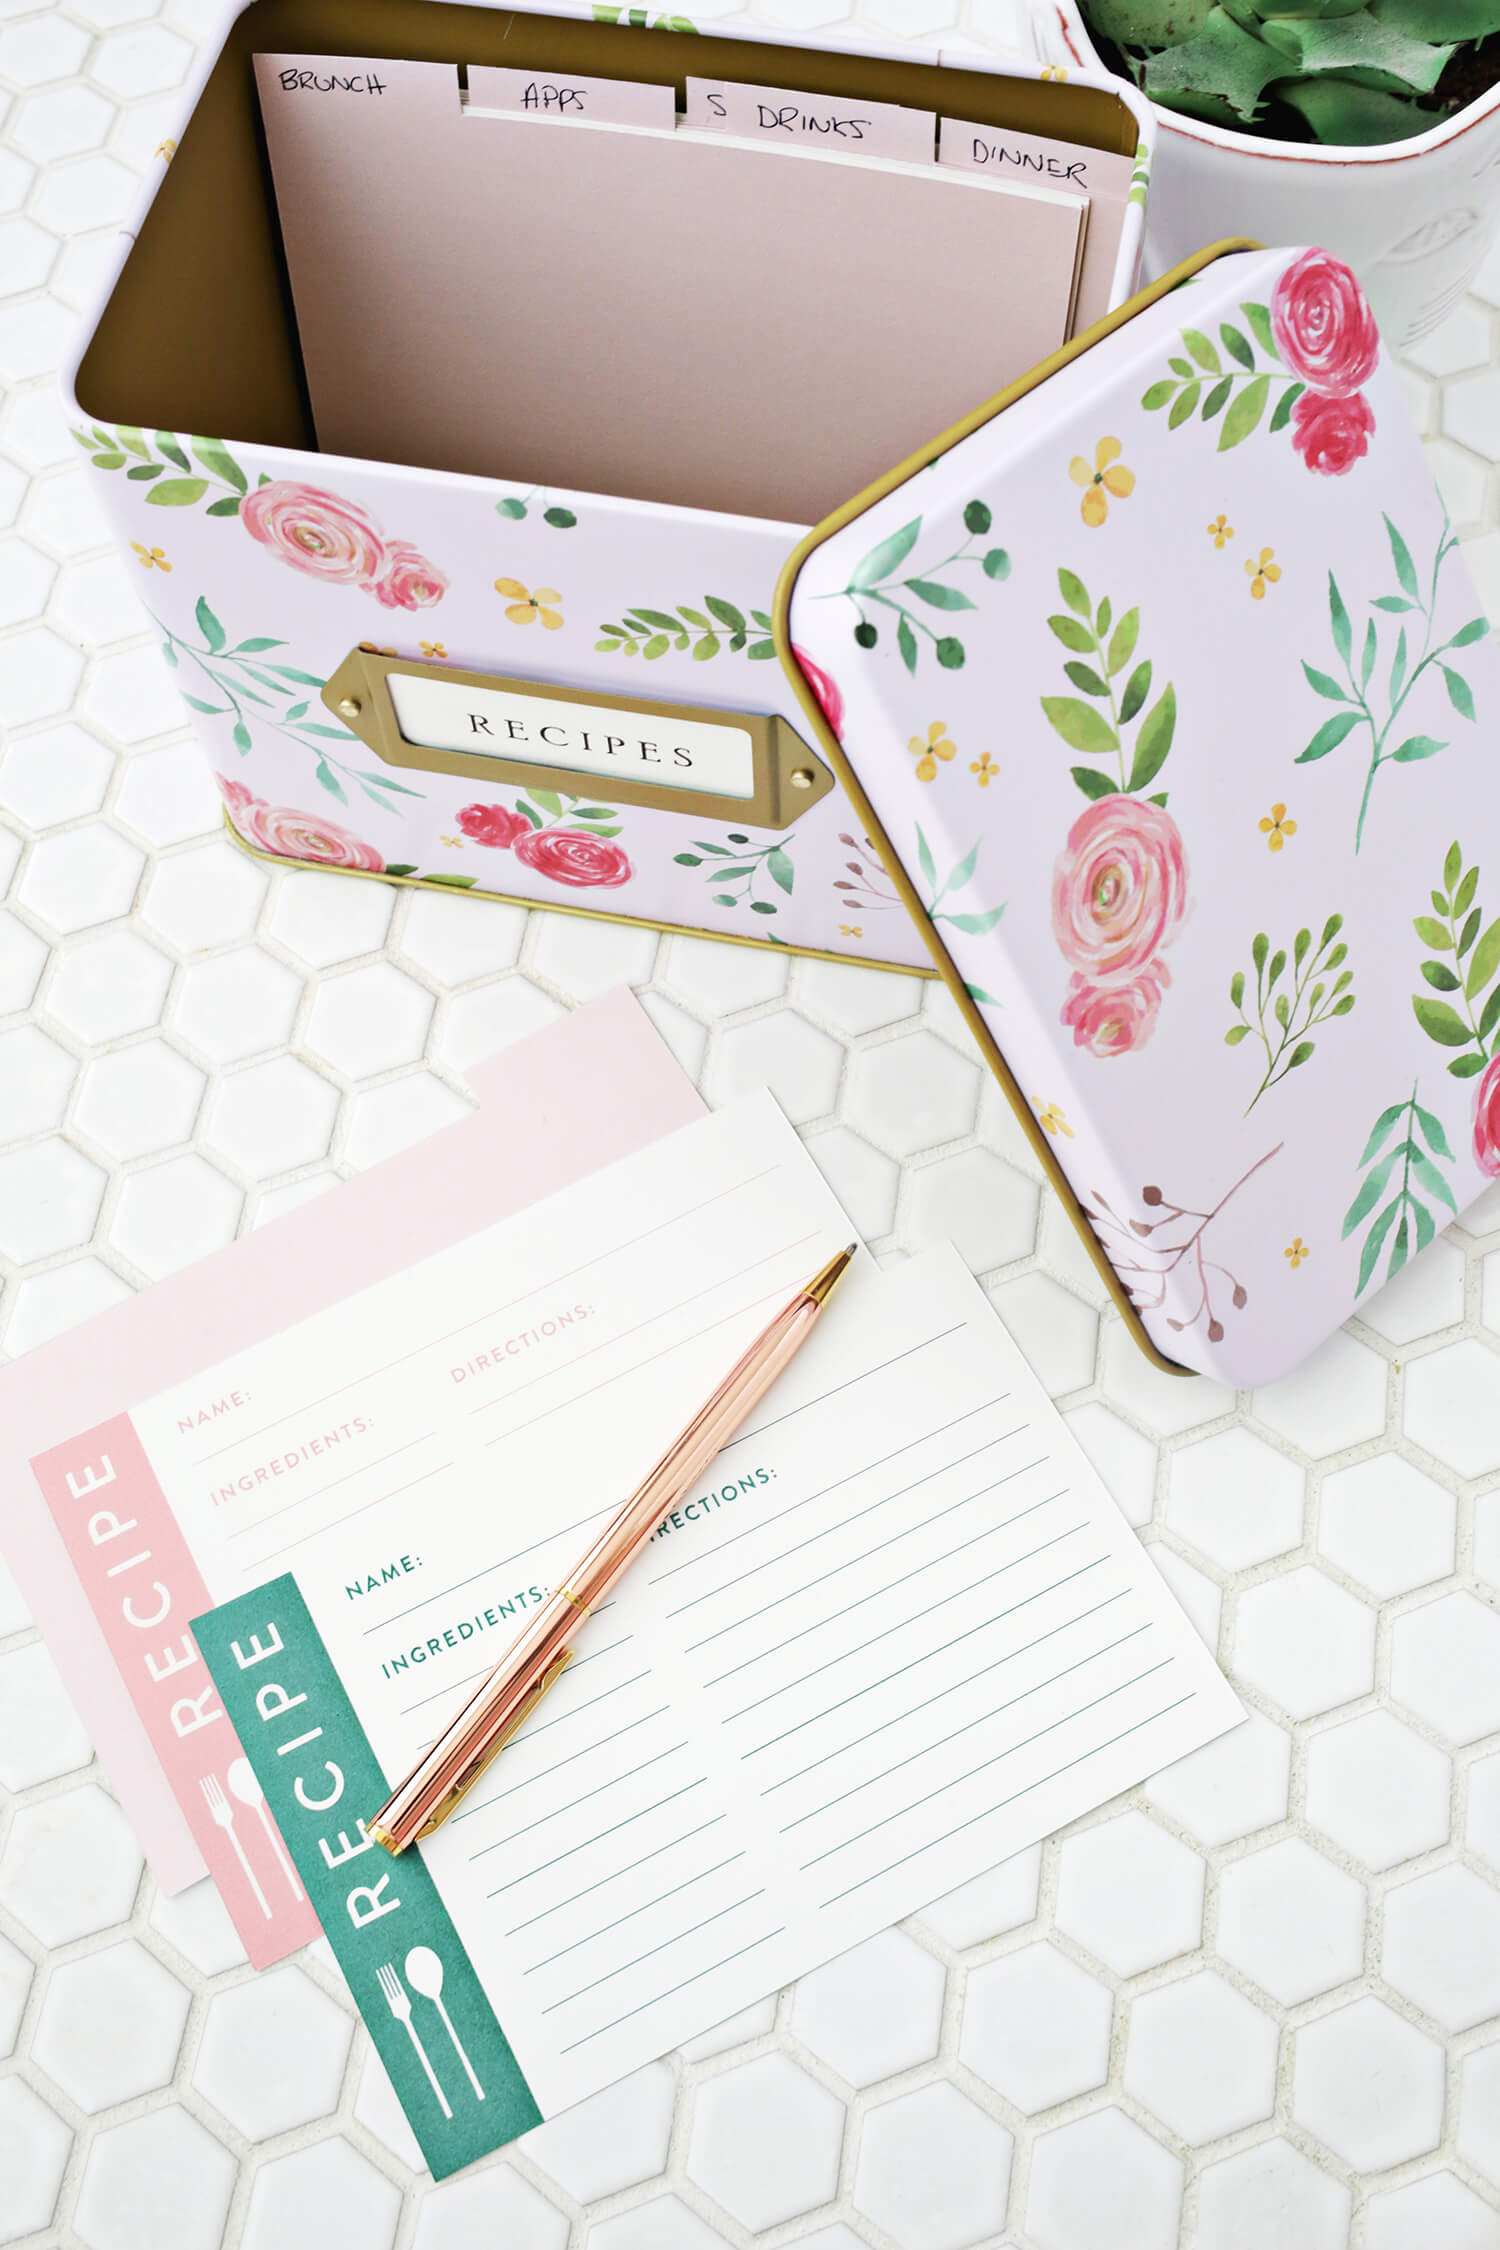 Isn T That Such A Pretty Recipe Box Too While Cards May Be The Old School Way To Do Cooking They Certainly Add Personal Touch Process